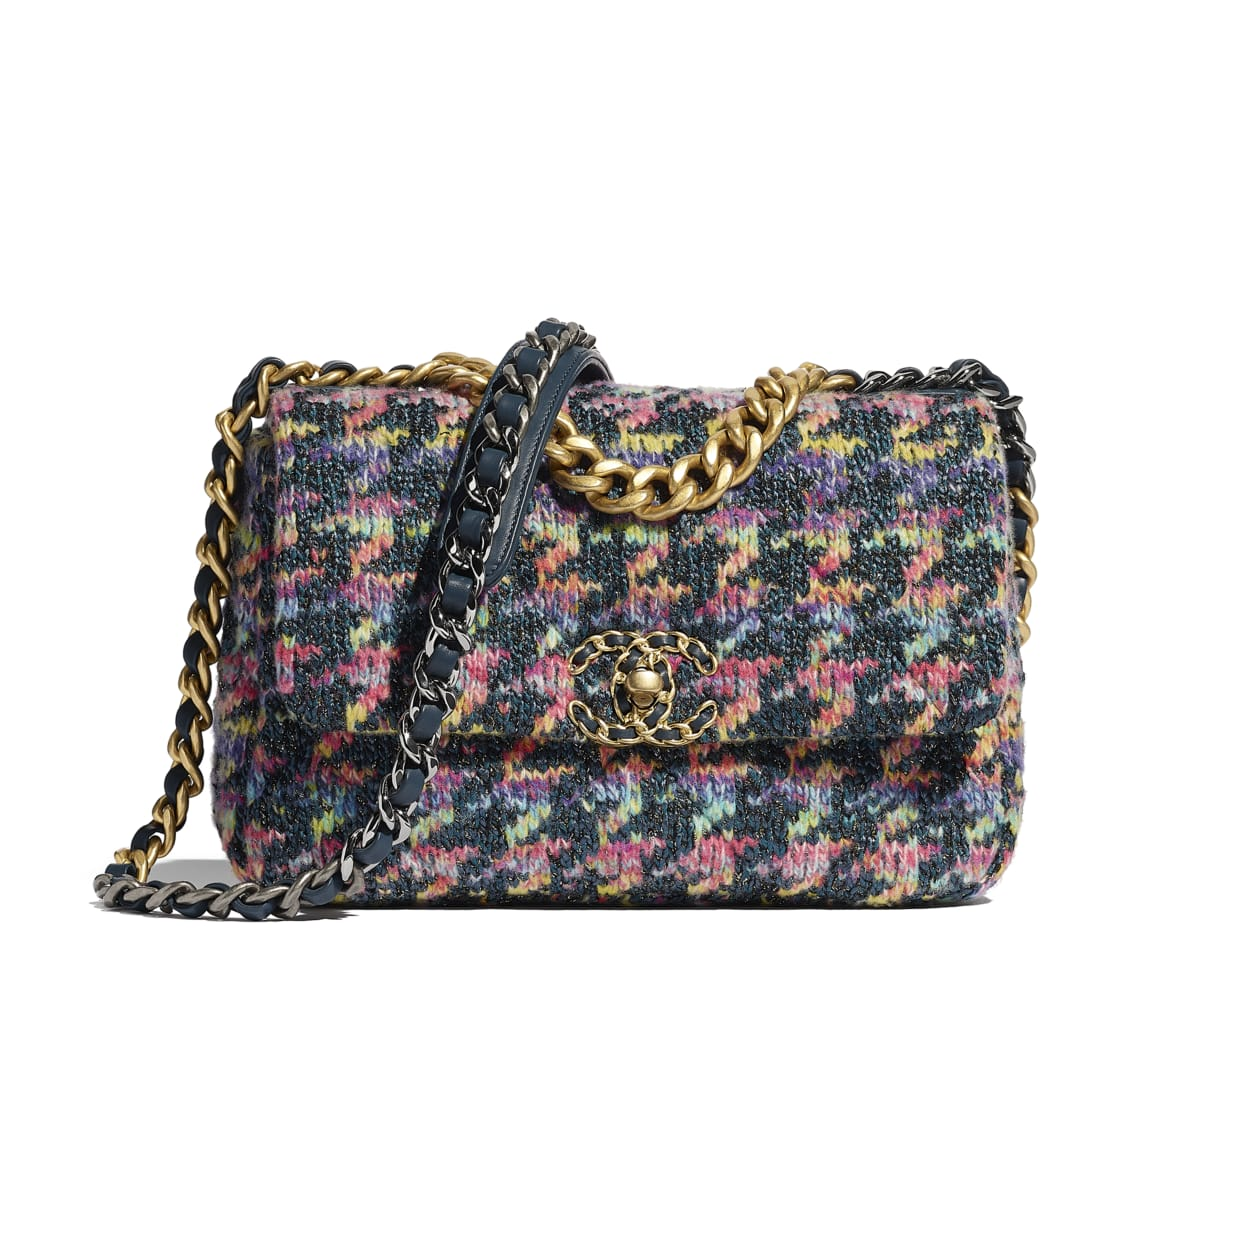 Multicolored tweed Chanel 19